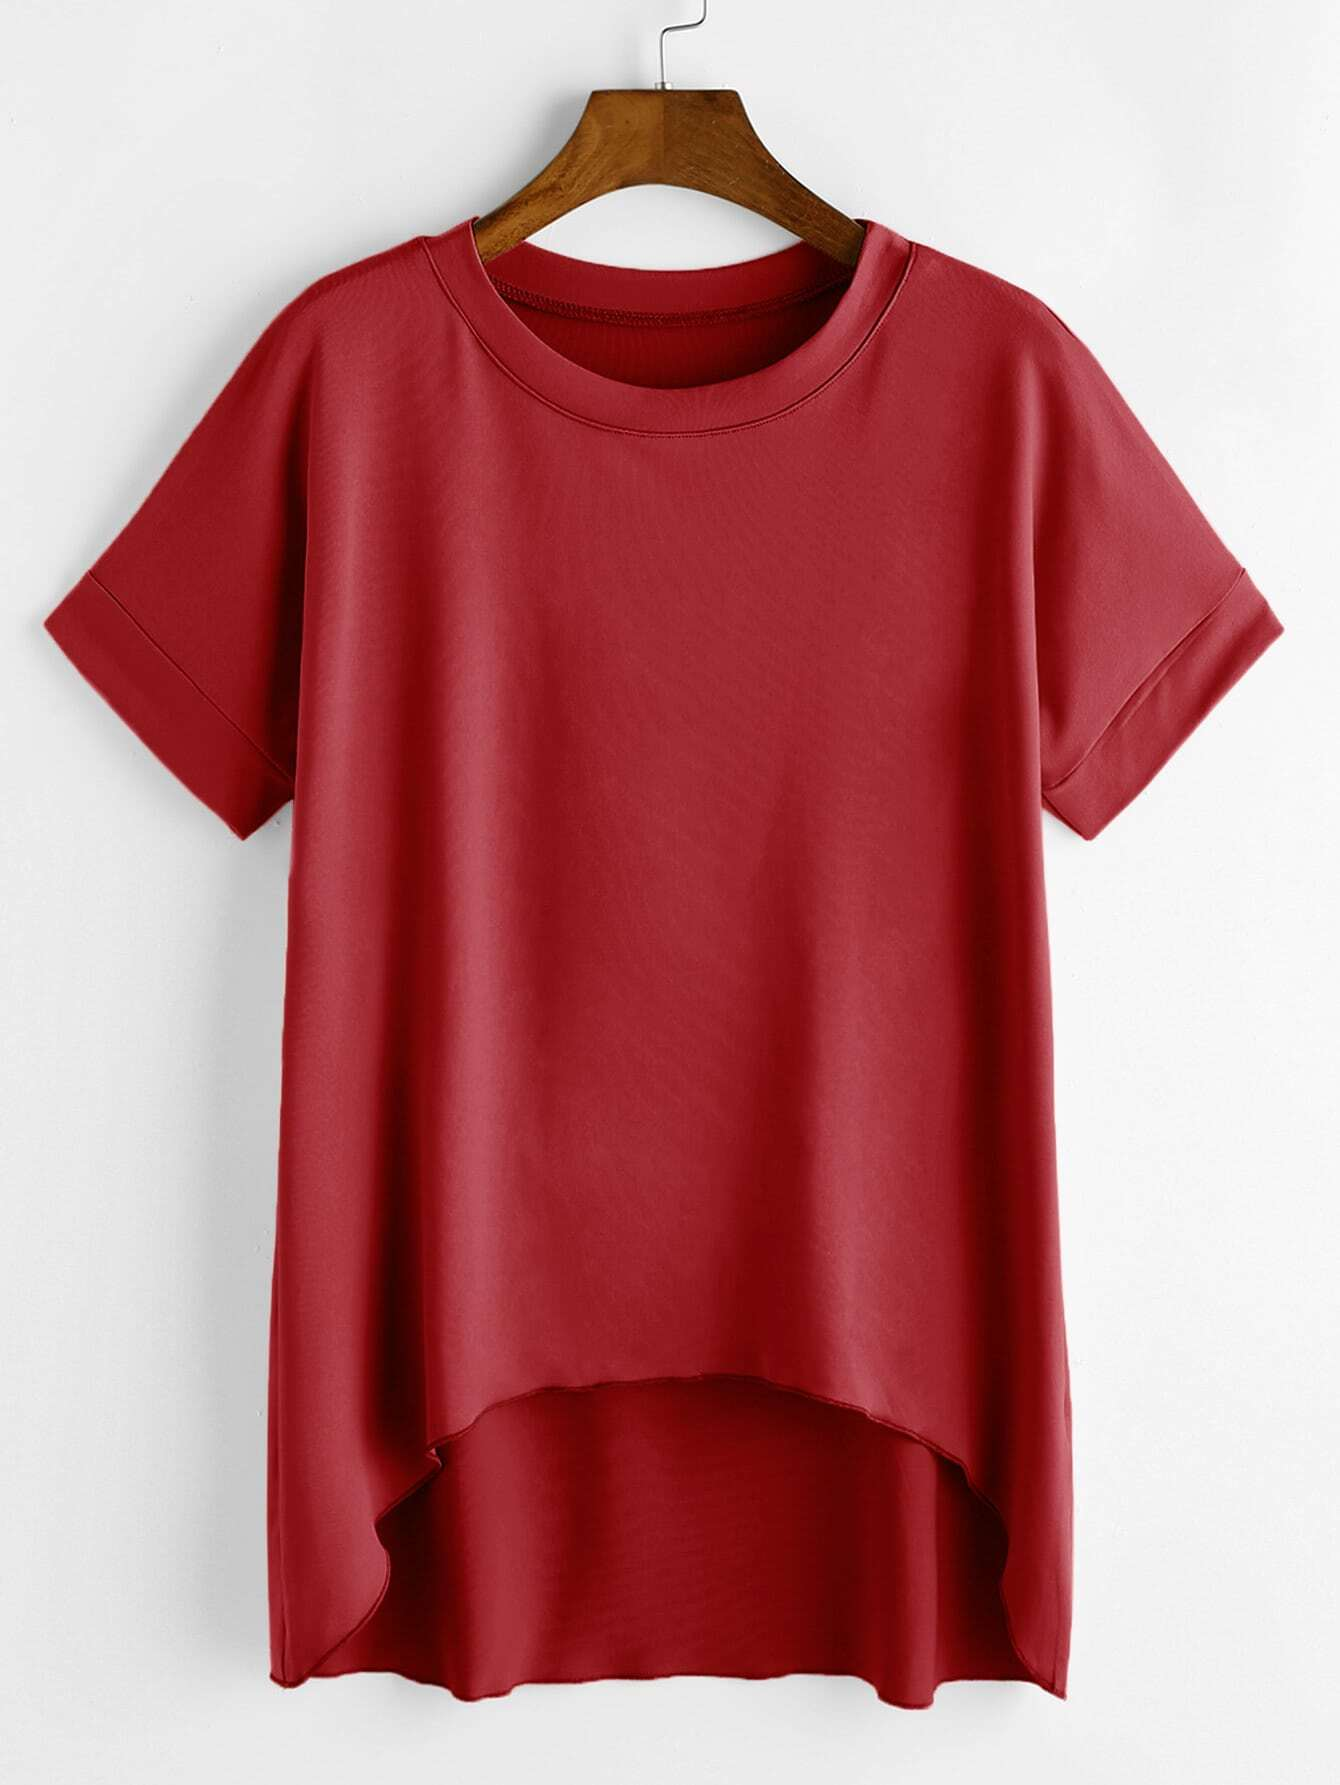 e852014949 Dip Hem Tee · Dip Hem Tee T-Shirts SheIn Product Catalog Red Polyester  Casual Short Sleeve Round Neck ...